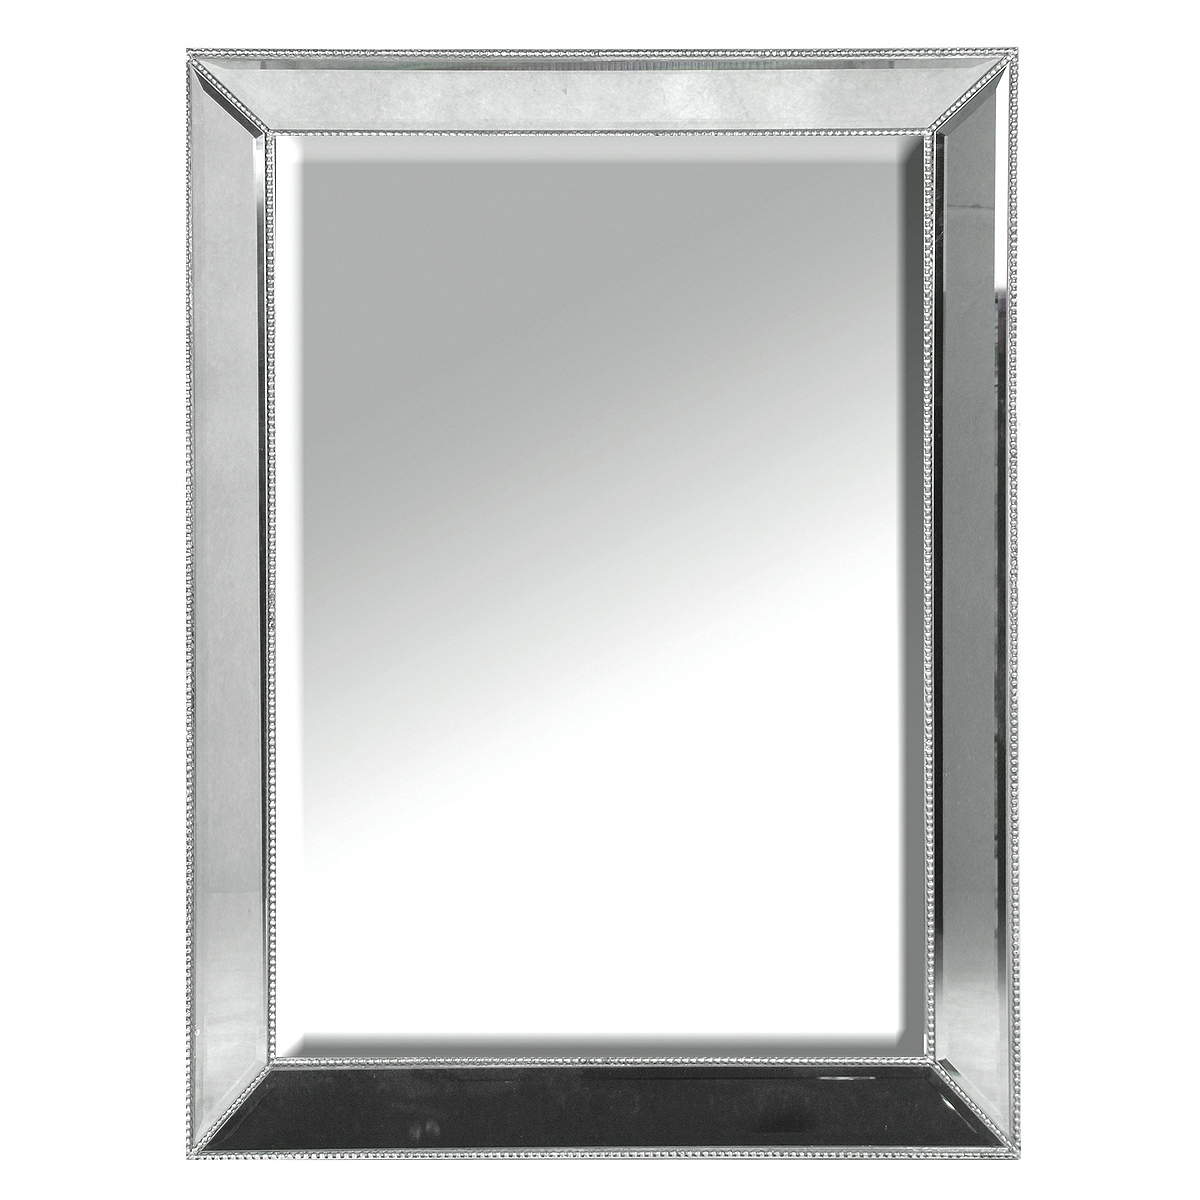 Studded Wall Mirrors Throughout Widely Used 1200X1200Px Mirror Wallpaper For Walls – Wallpapersafari (View 15 of 20)